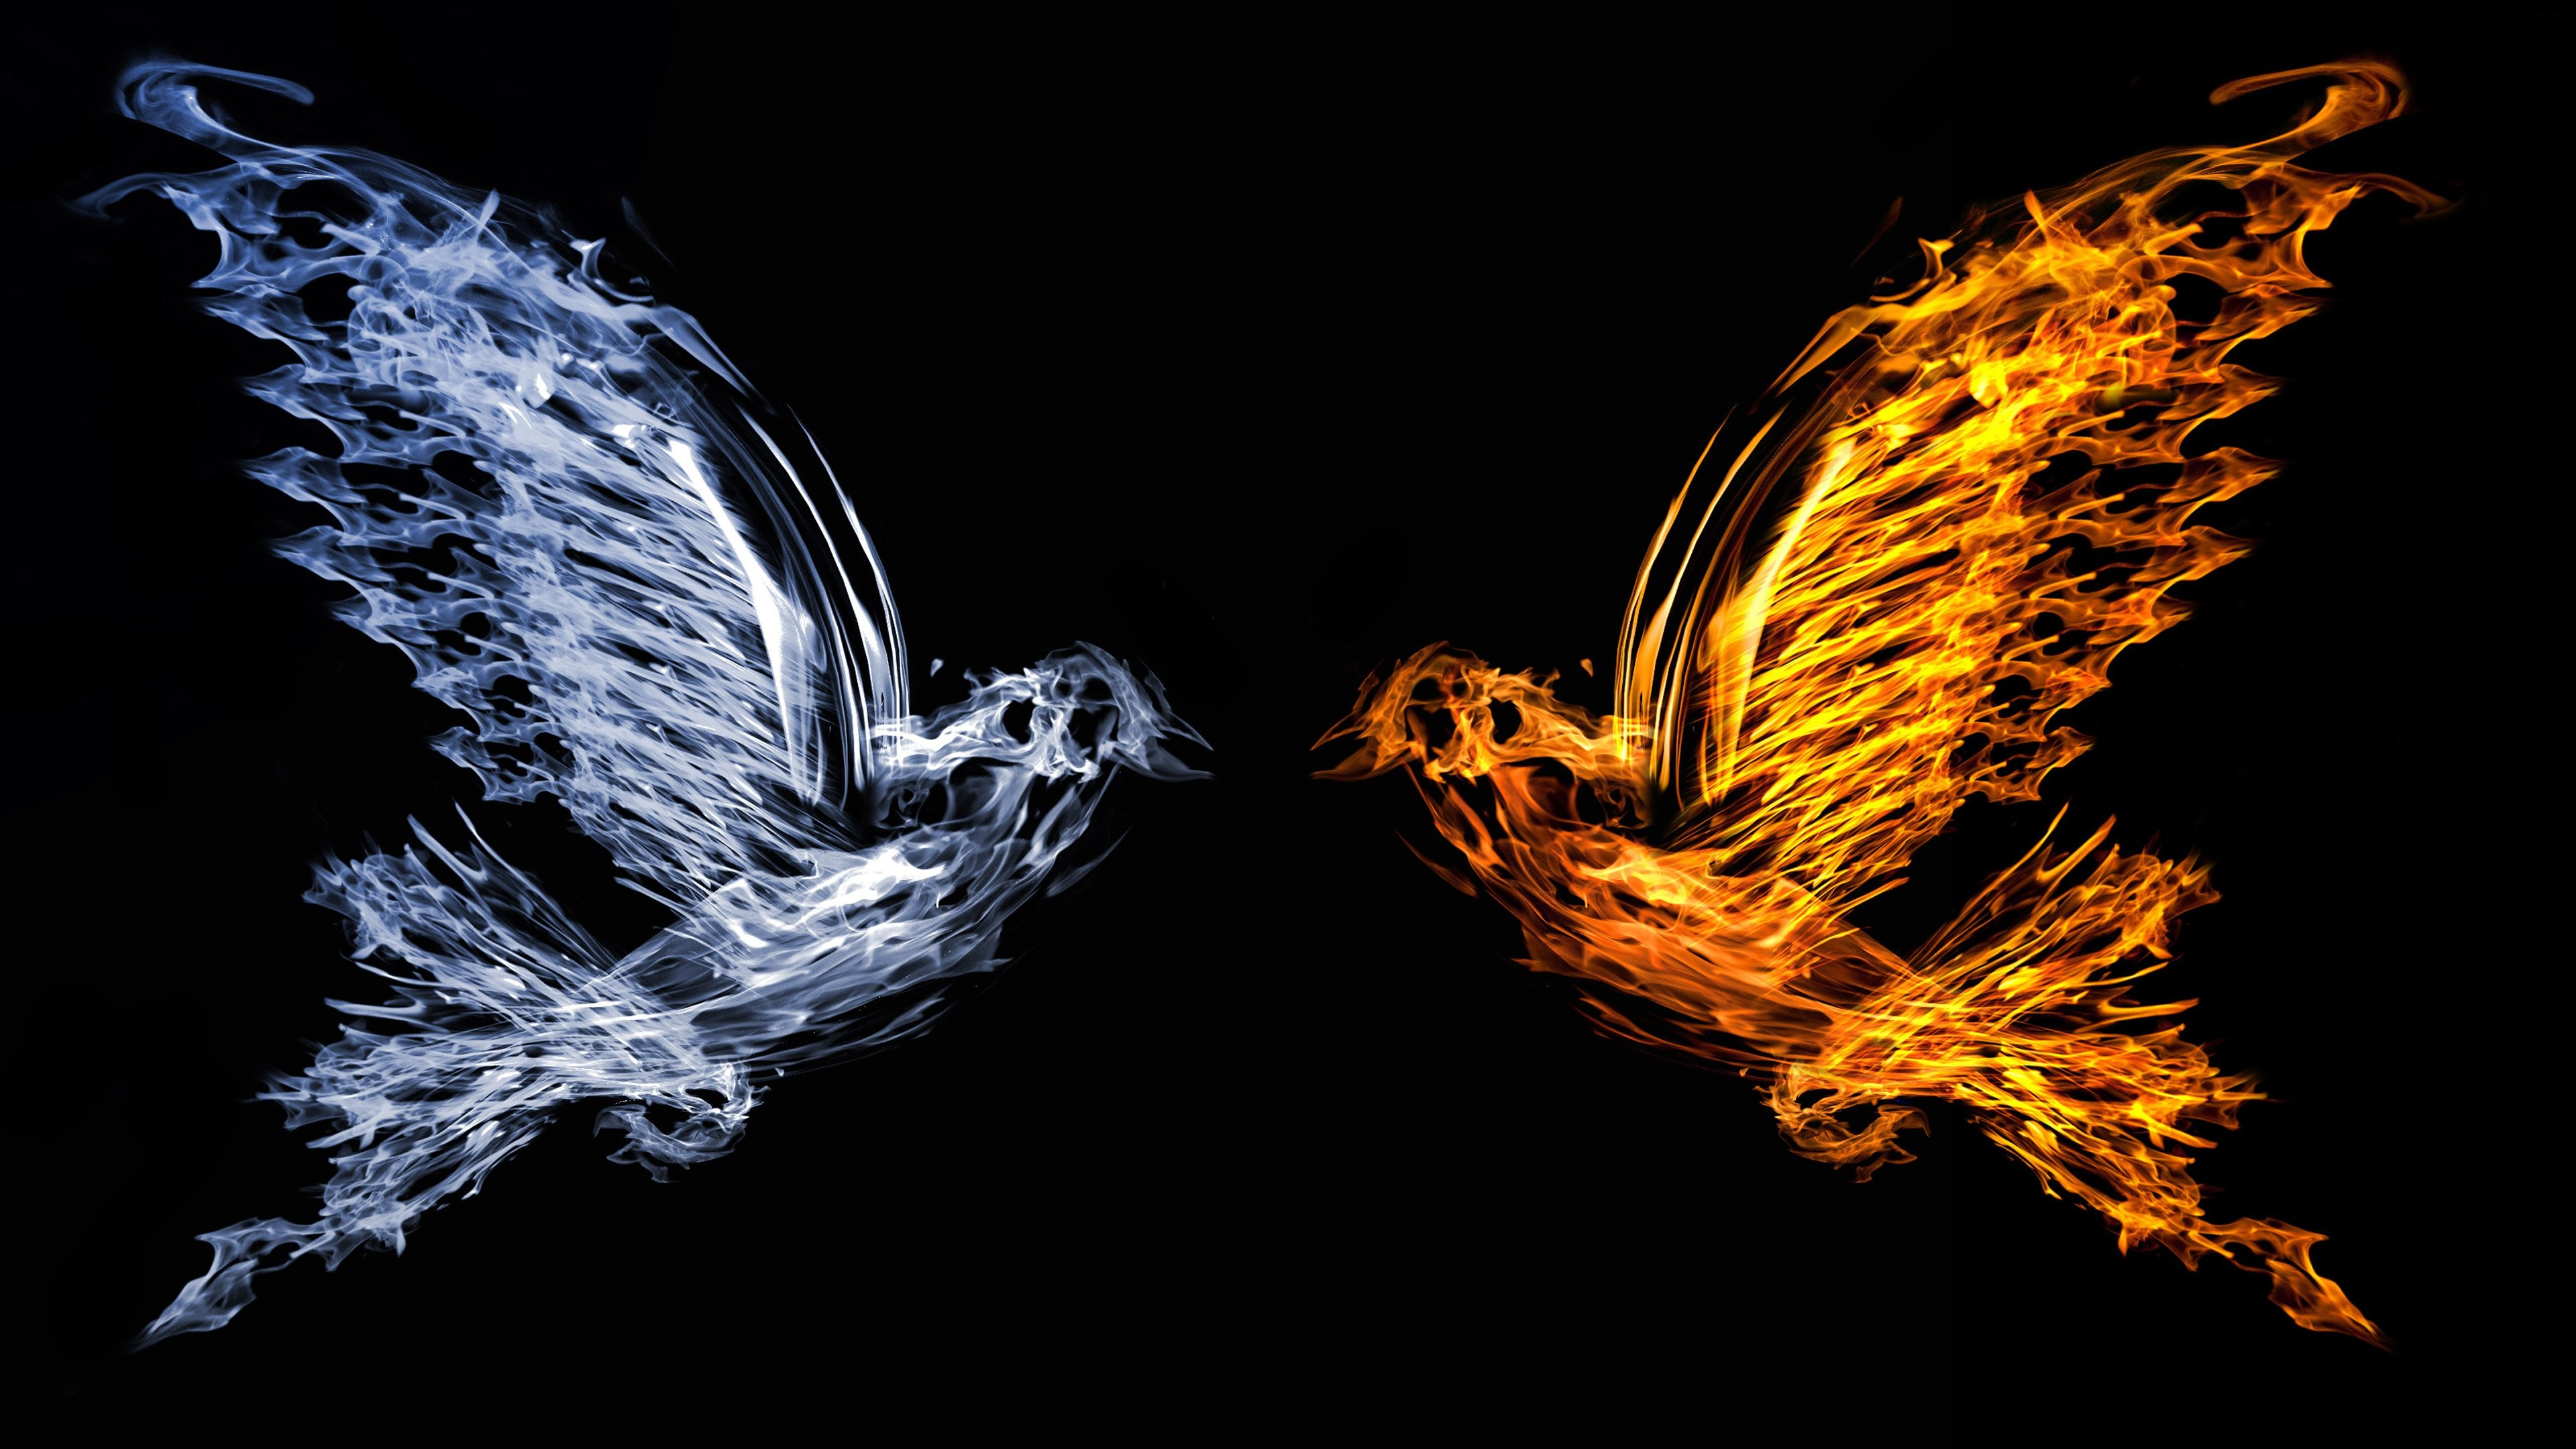 Wallpaper Bird 4k 5k Art Fire Water Abstract 11436